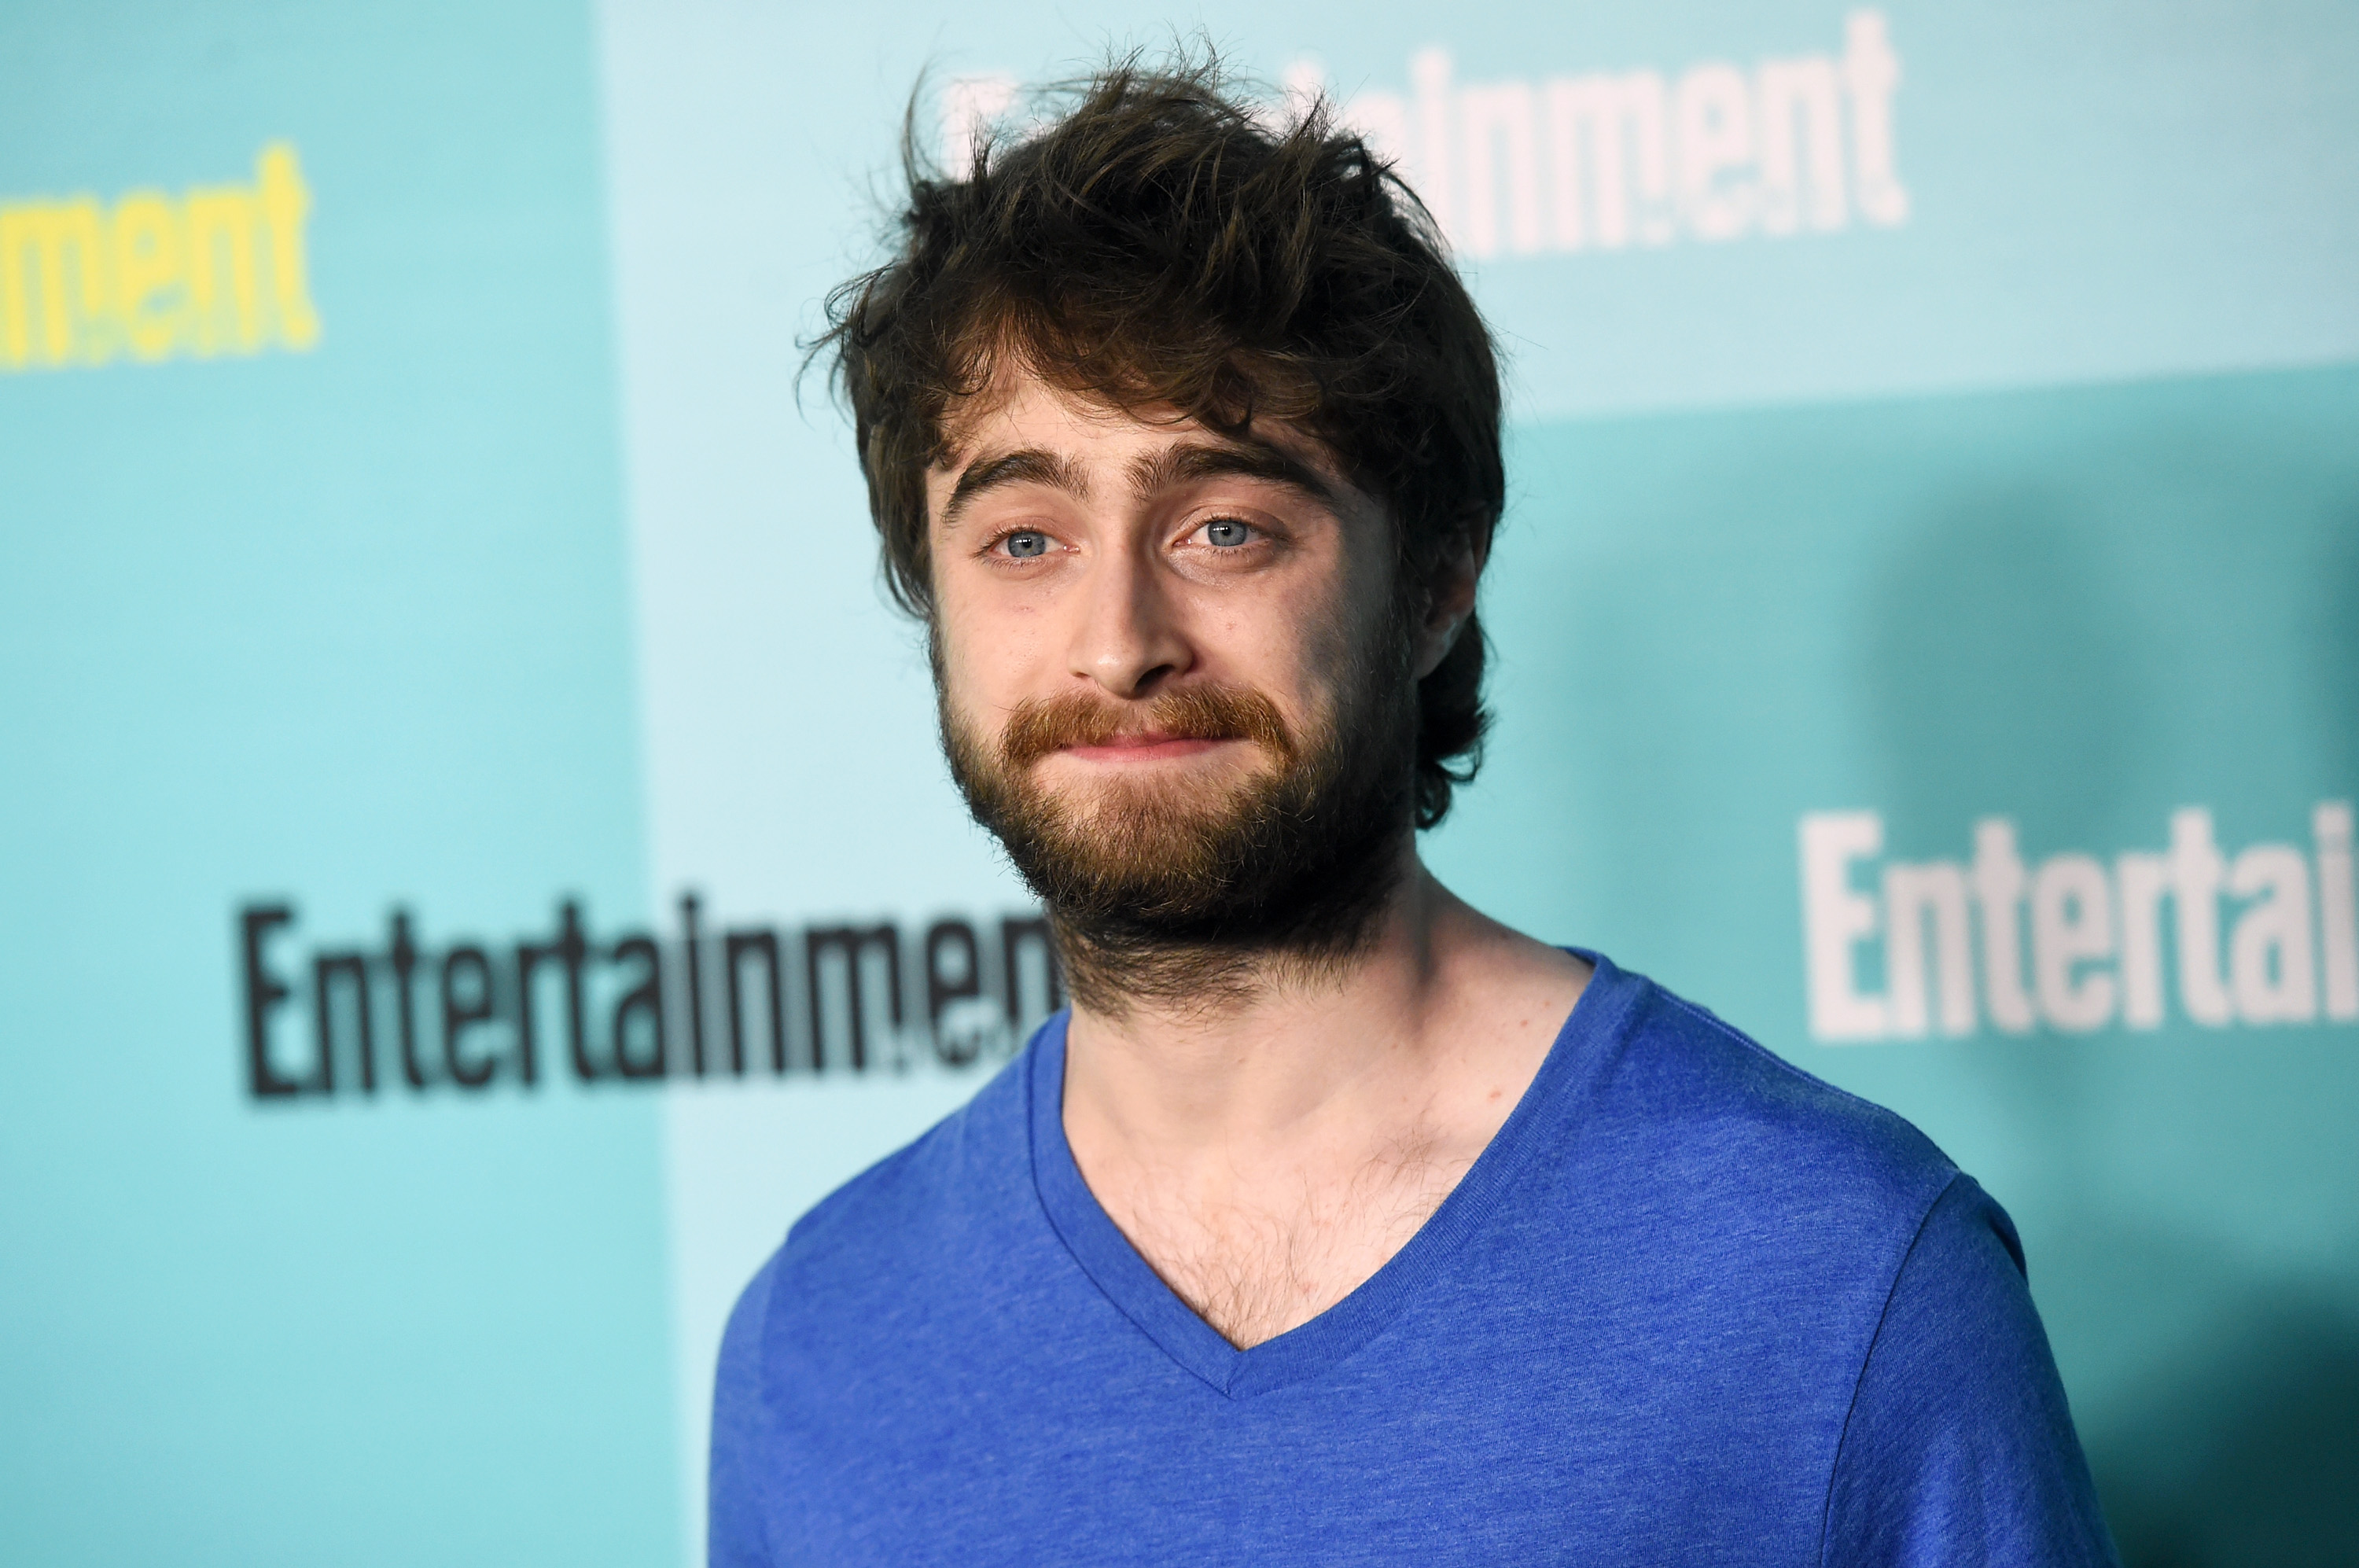 Watch Daniel Radcliffe win karaoke with Eminem's 'The Real Slim Shady' [VIDEO]